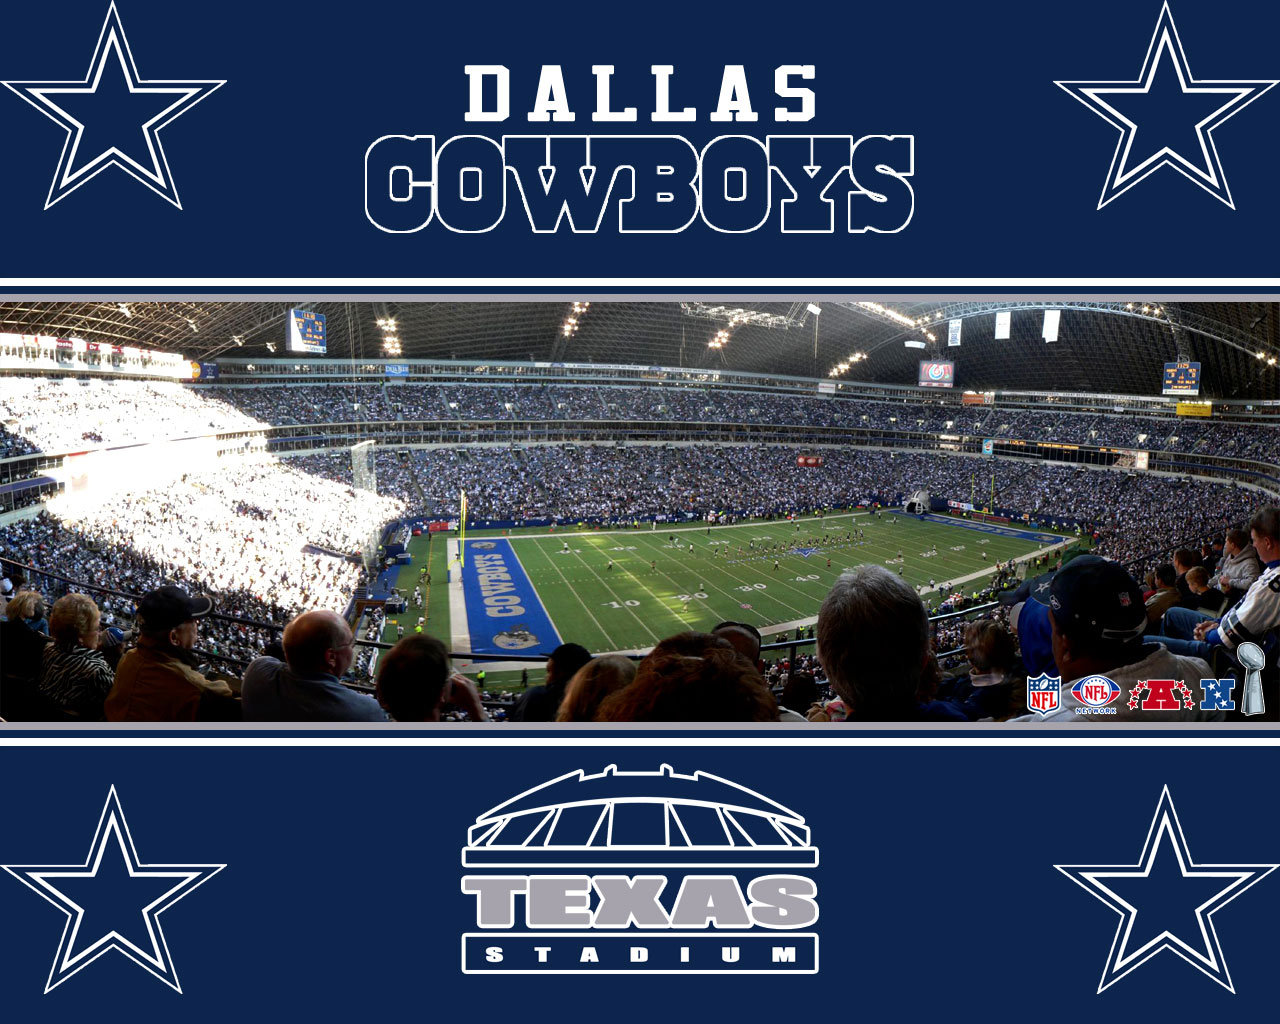 Best images collections hd for gadget windows mac android free dallas cowboys live wallpaper dallas cowboy live voltagebd Images